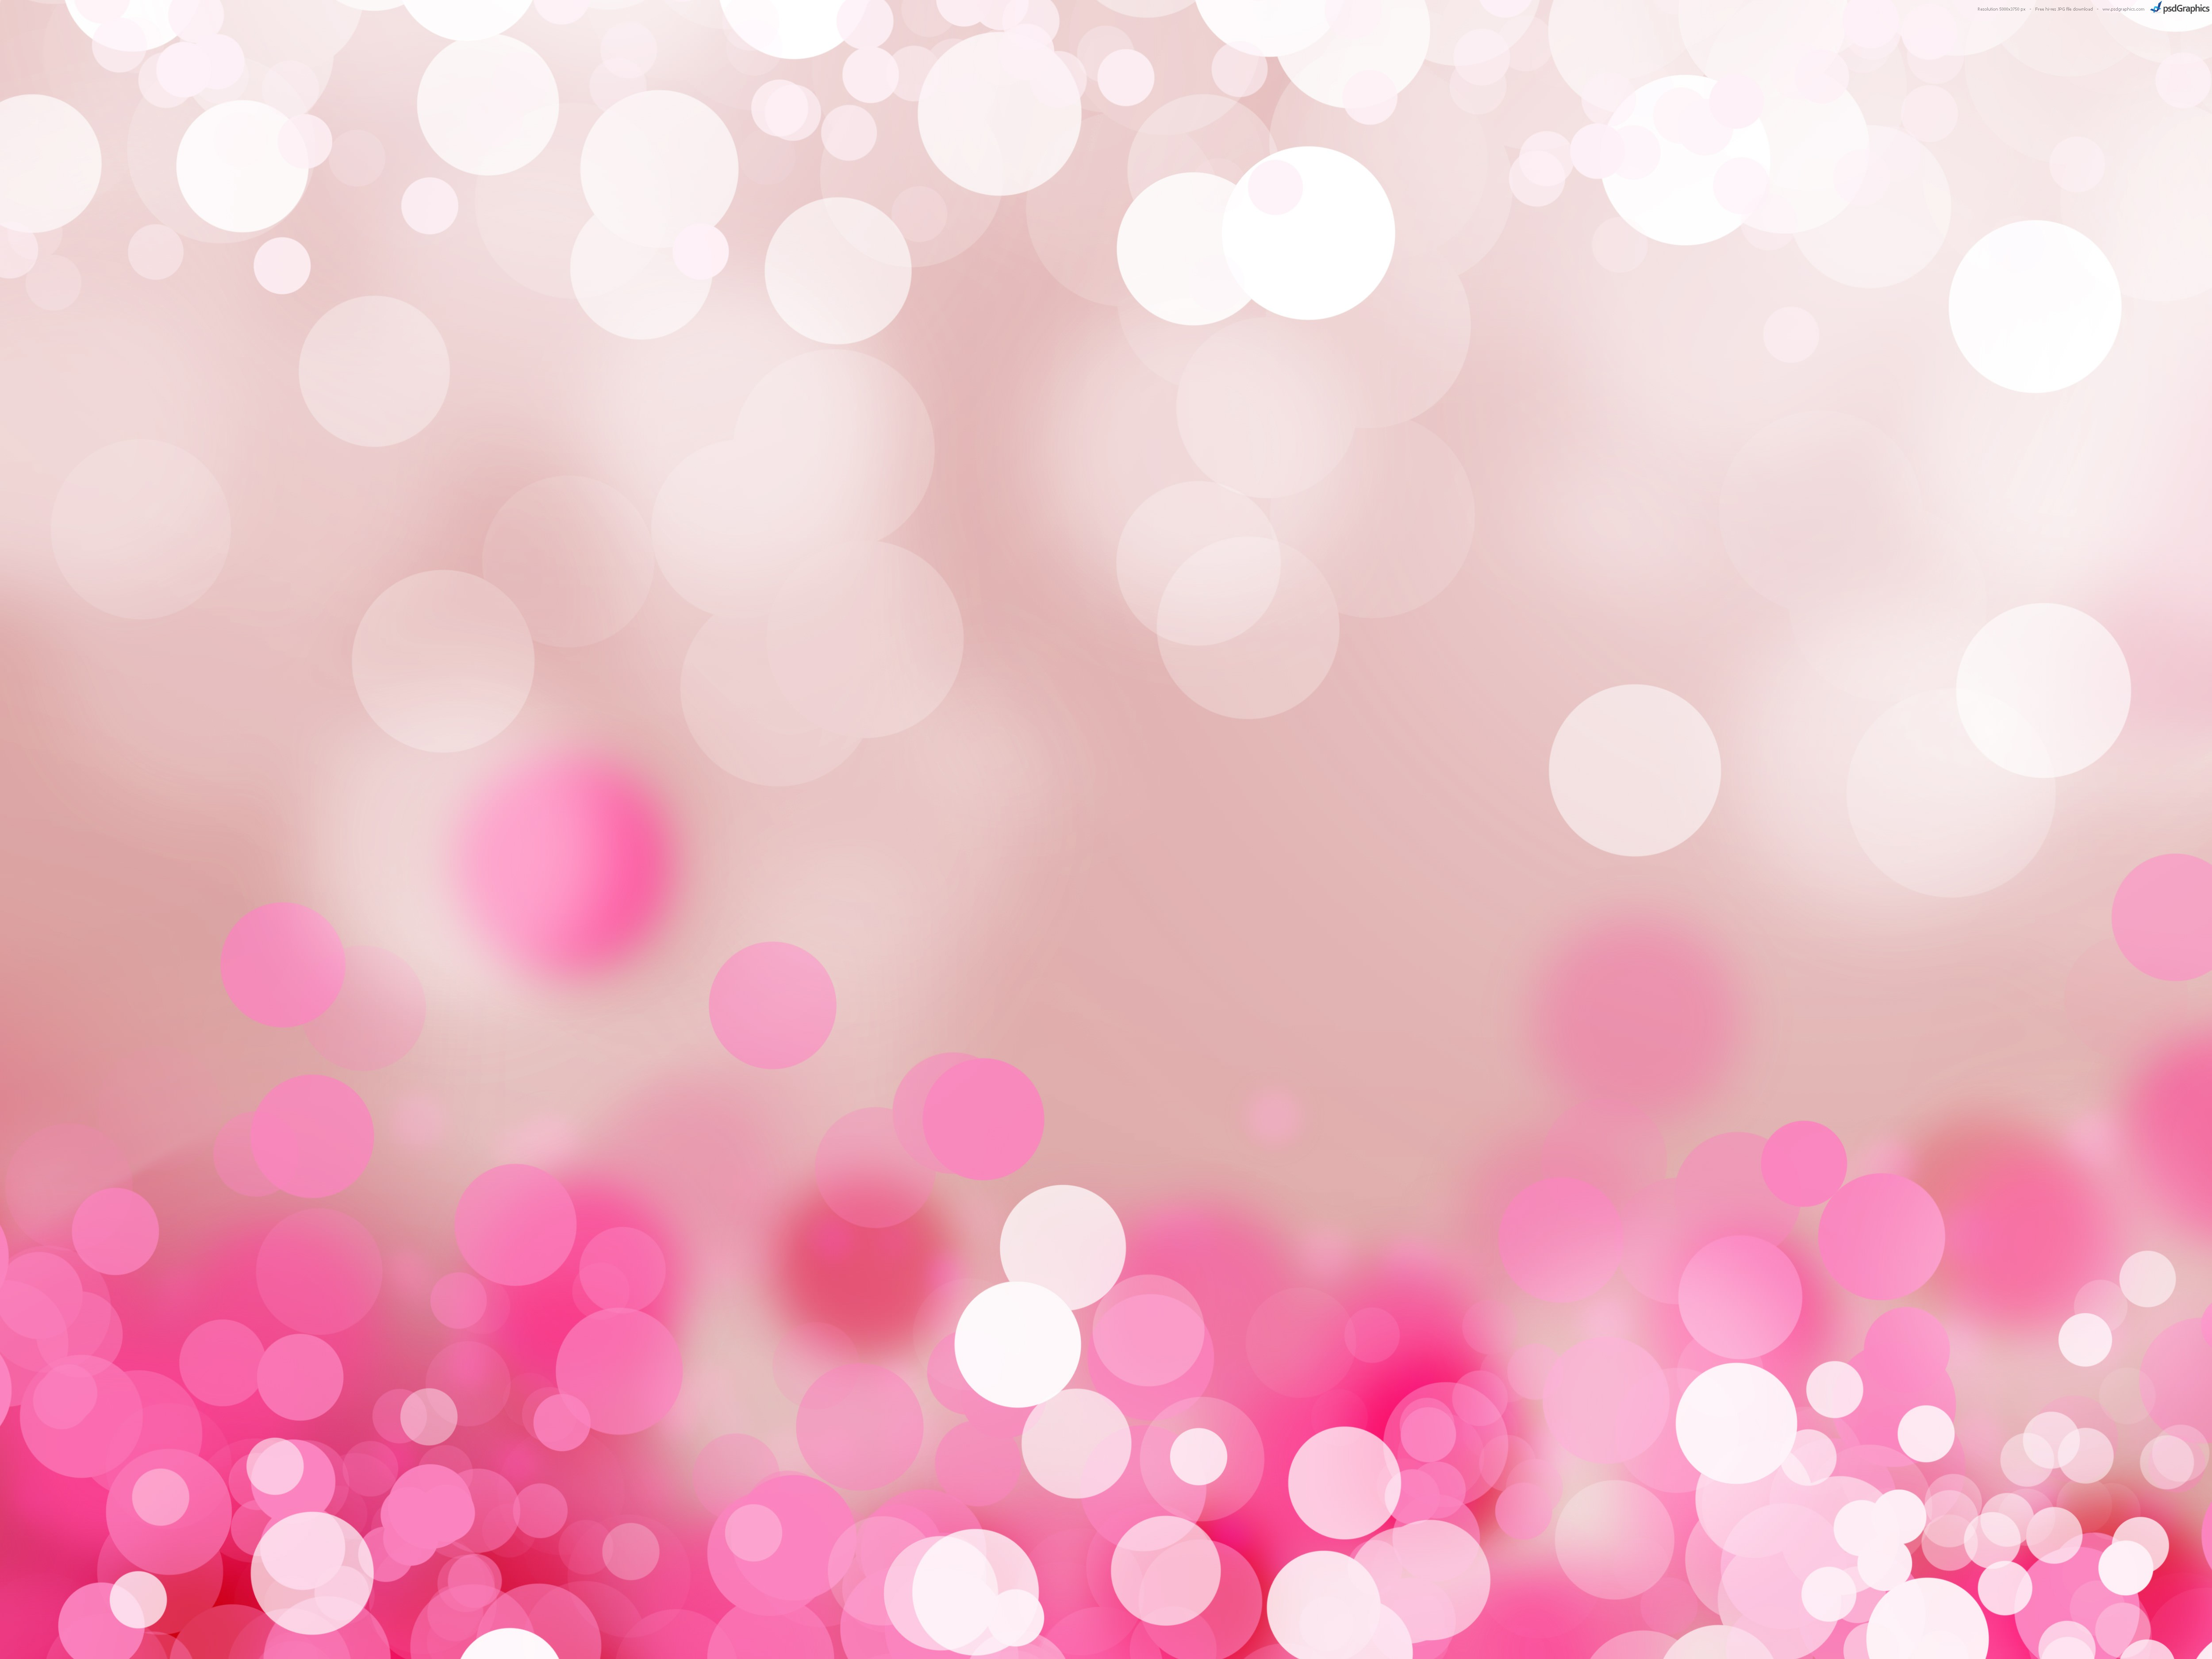 Pink Wallpapers   Top Pink Backgrounds   WallpaperAccess 5000x3750